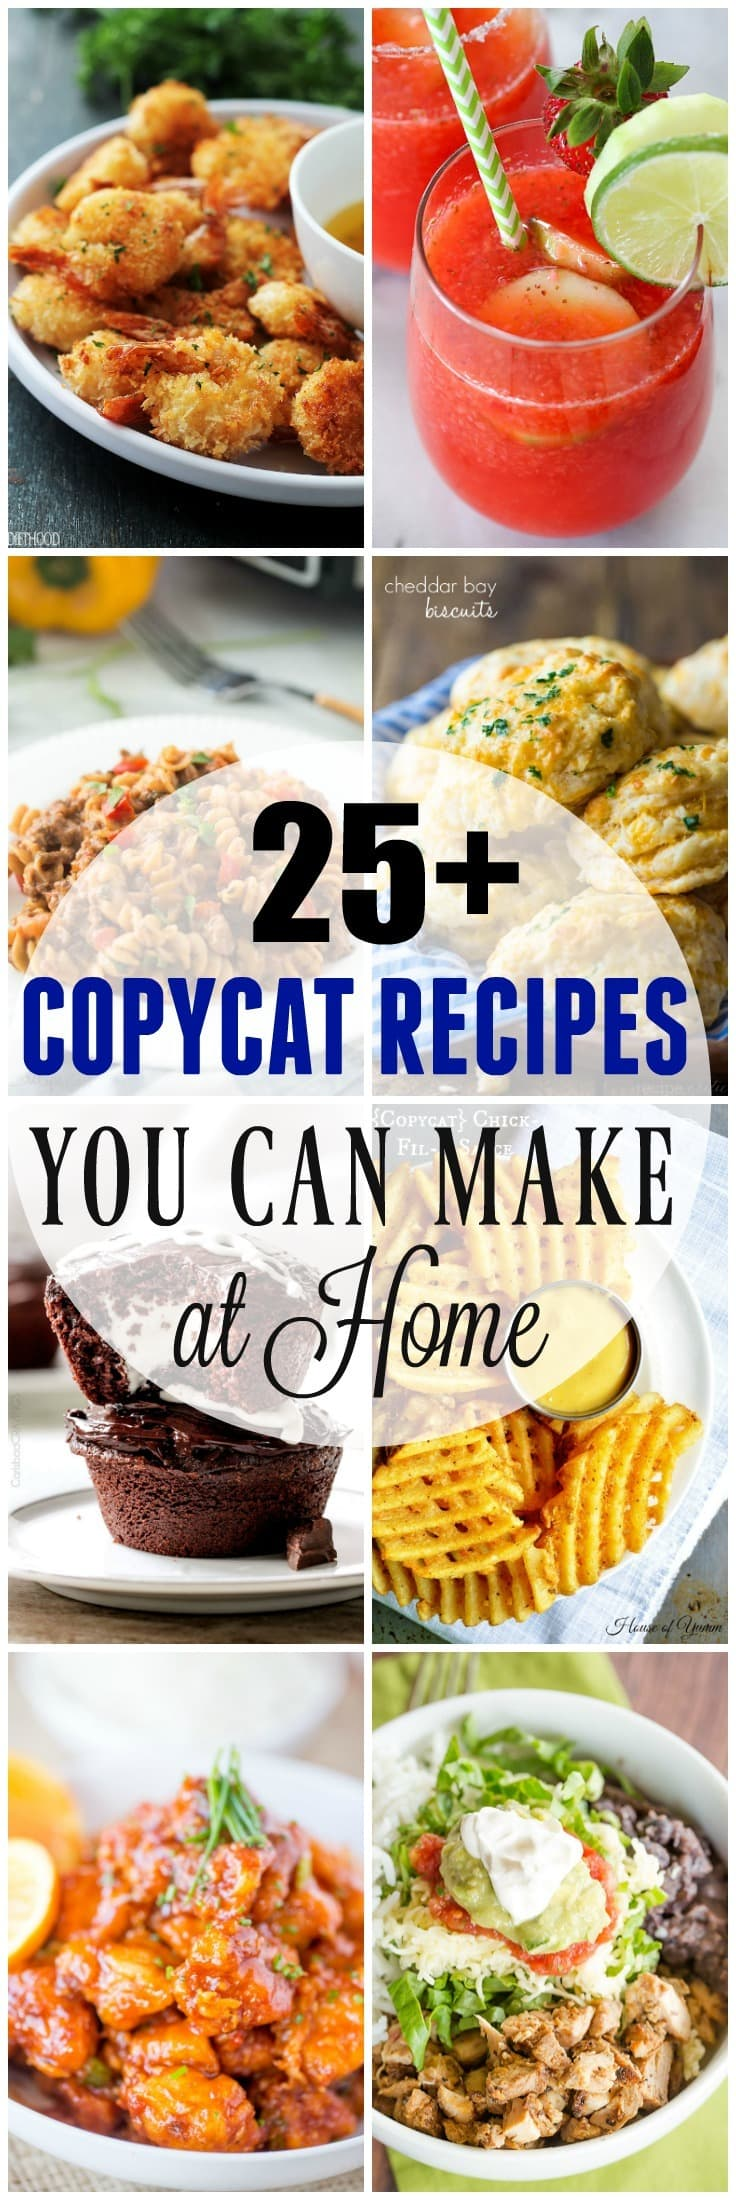 25 copycat recipes to make at home yummy healthy easy 25 copycat recipes to make at home eating out is fun but it forumfinder Images